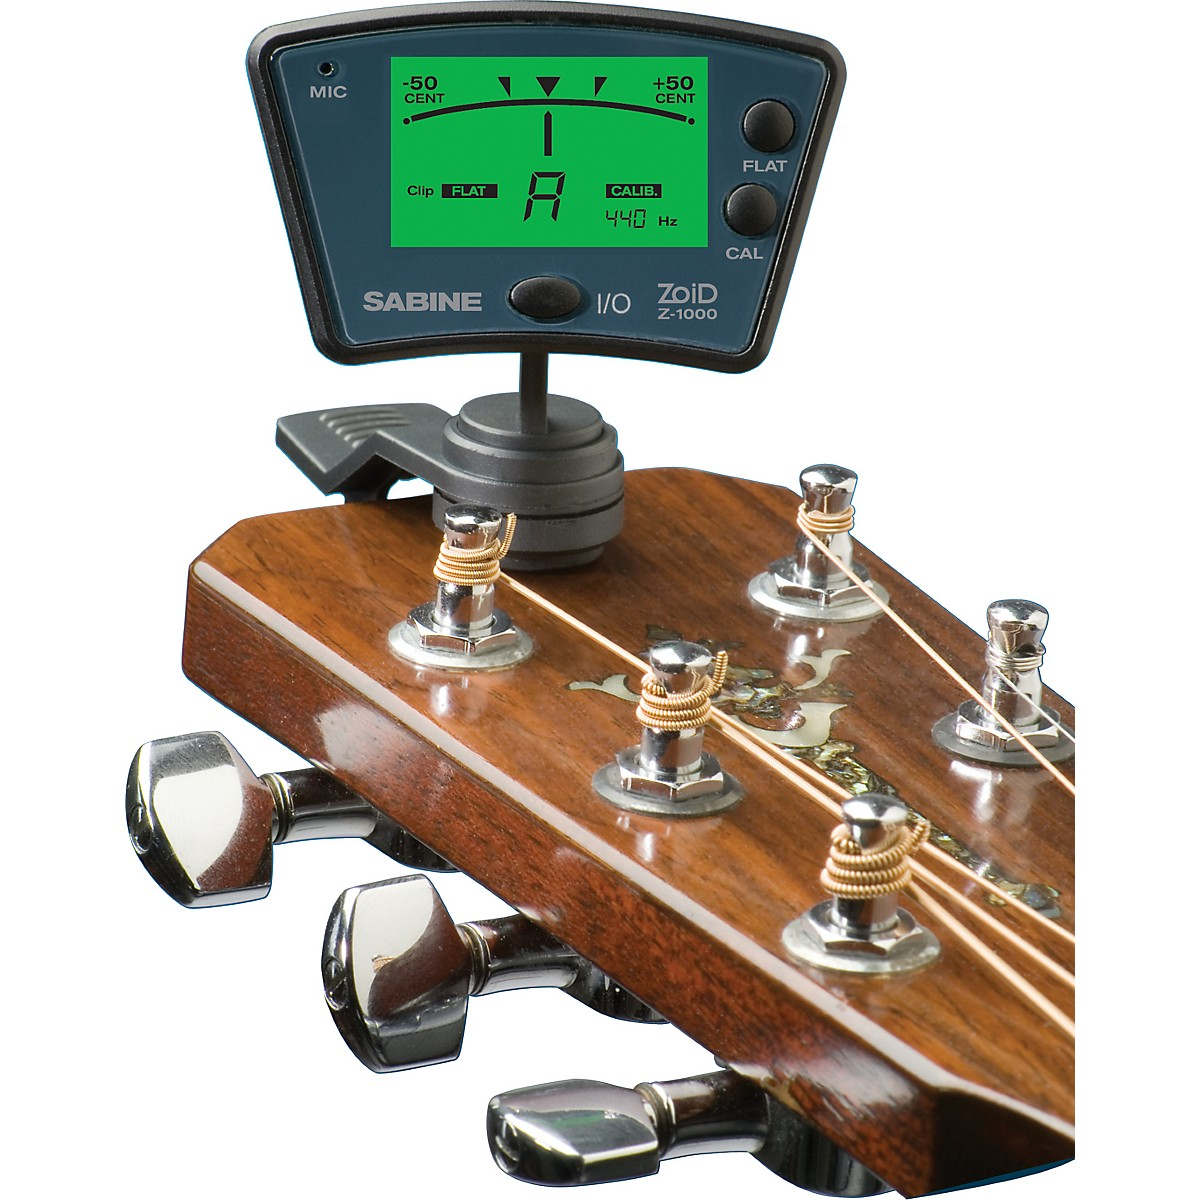 Sabine Zoid Clip-On Tuner for Stringed Instruments